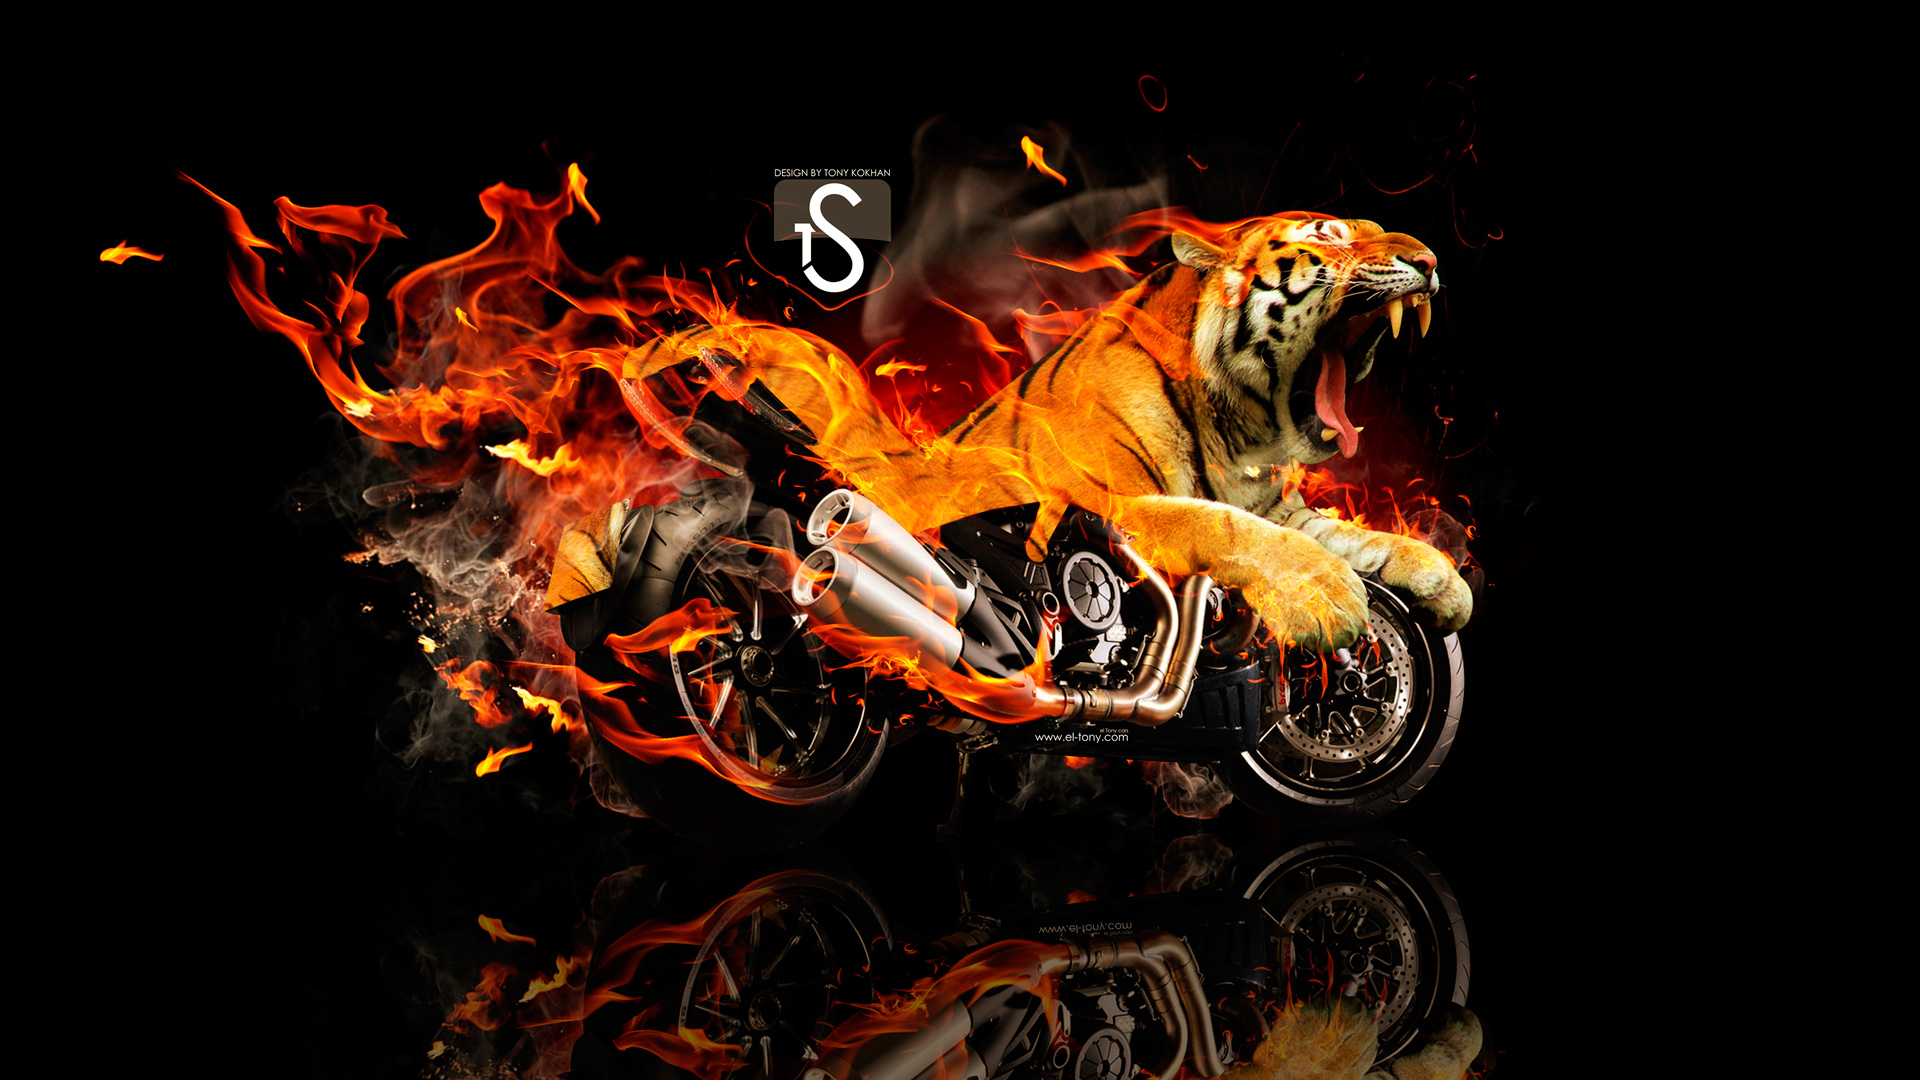 Ducati Diavel Tiger Fire Fantasy 2013